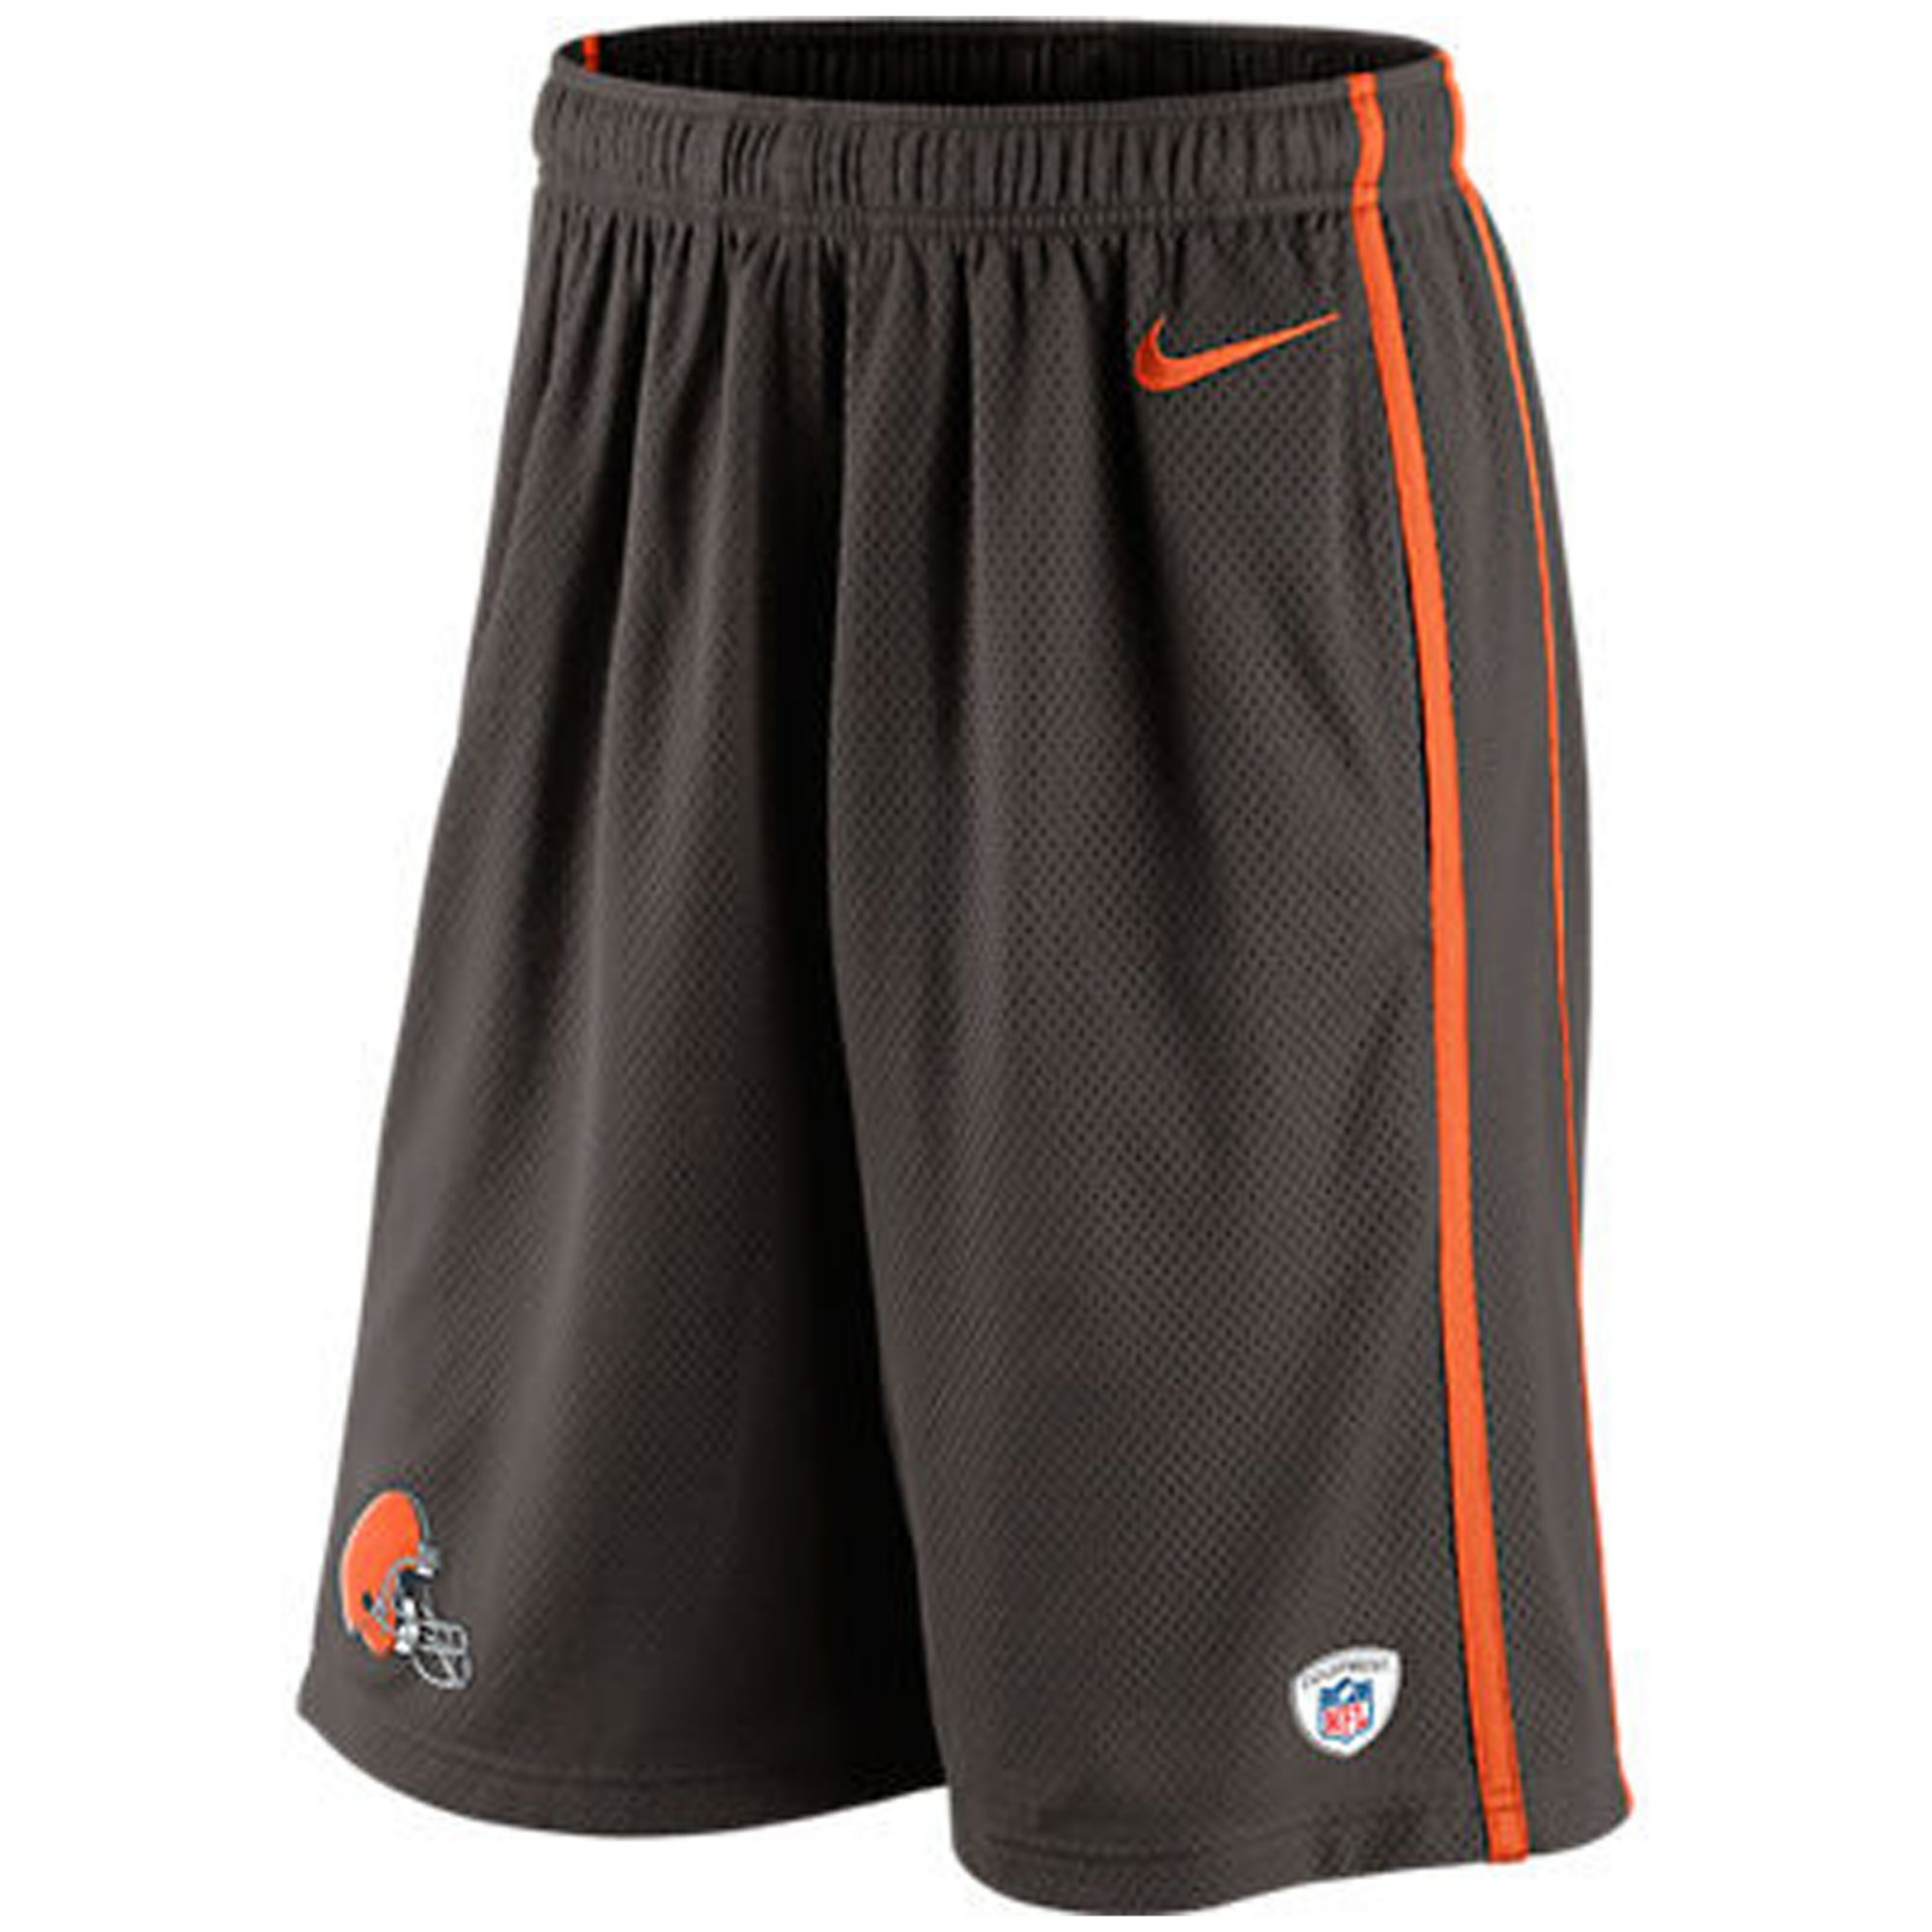 Nike shorts casual shorts in Brown for Men | Lyst